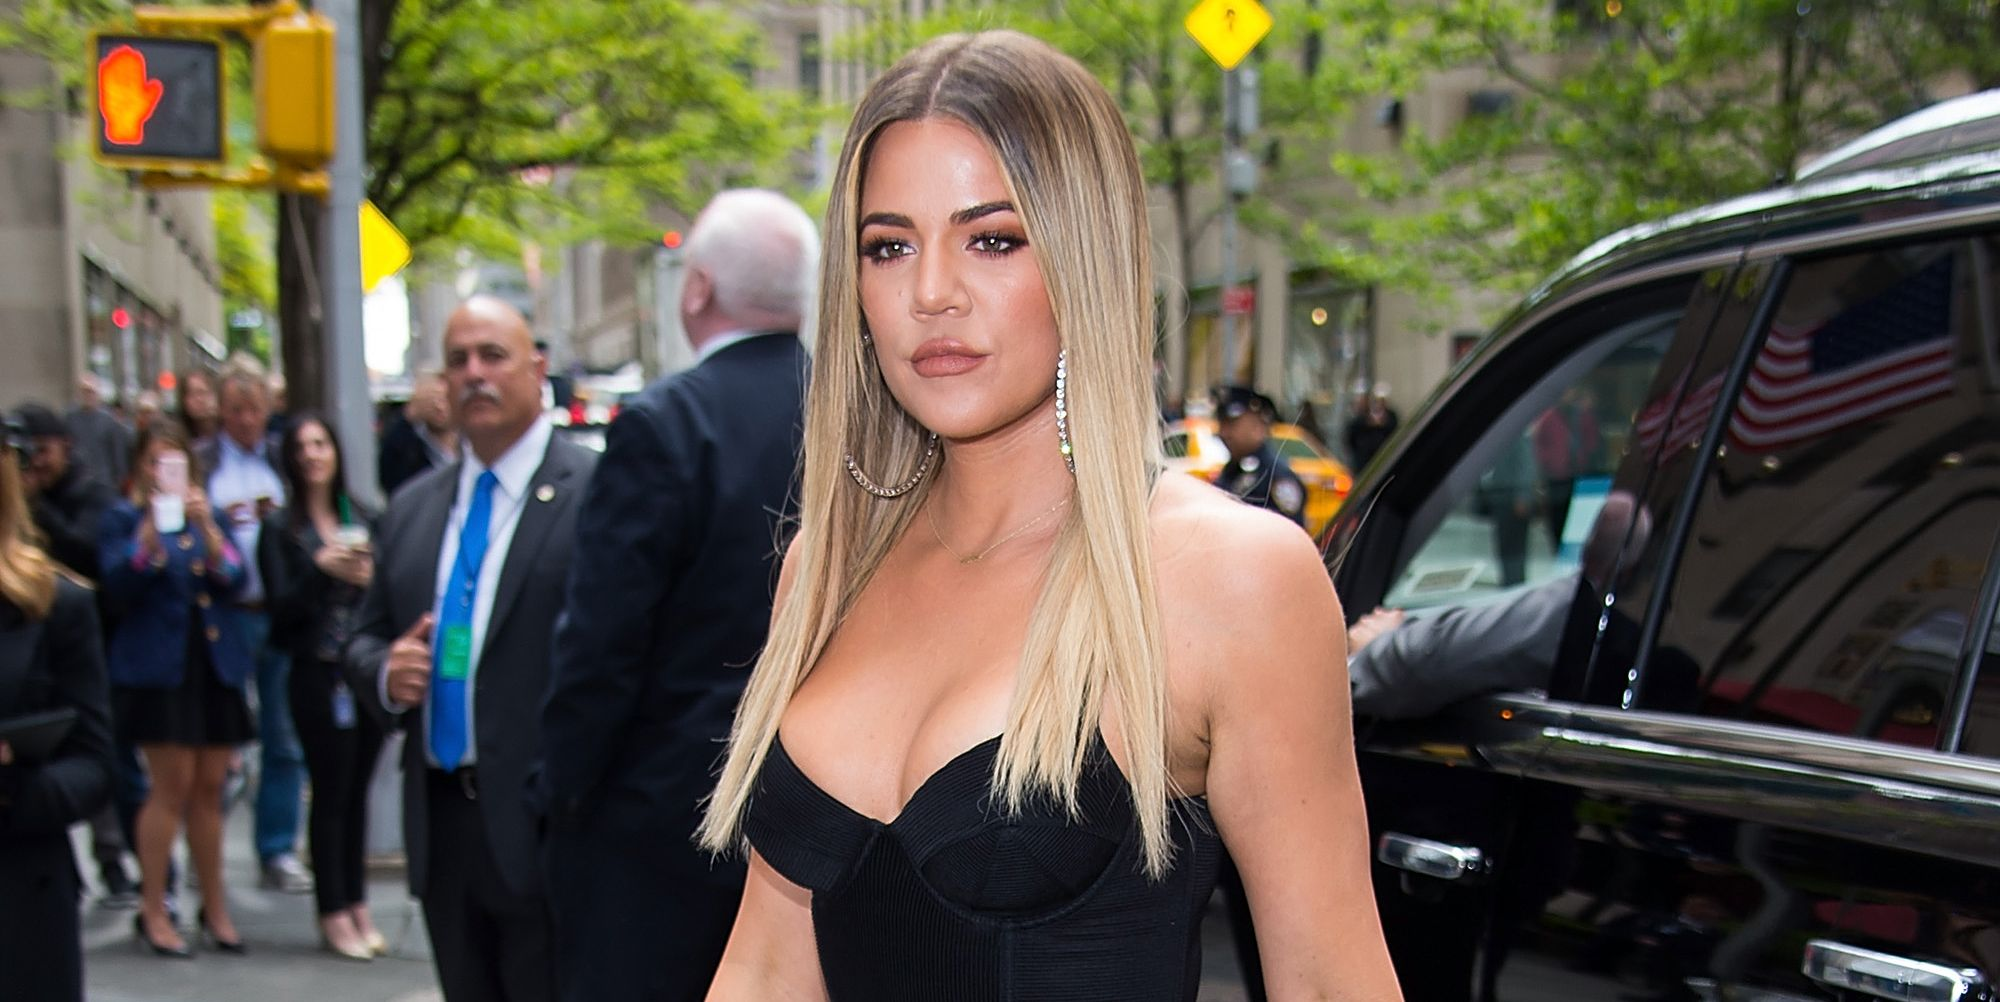 Khloé Kardashian Confesses She Thinks About Getting A Nose Job 'Every Day'